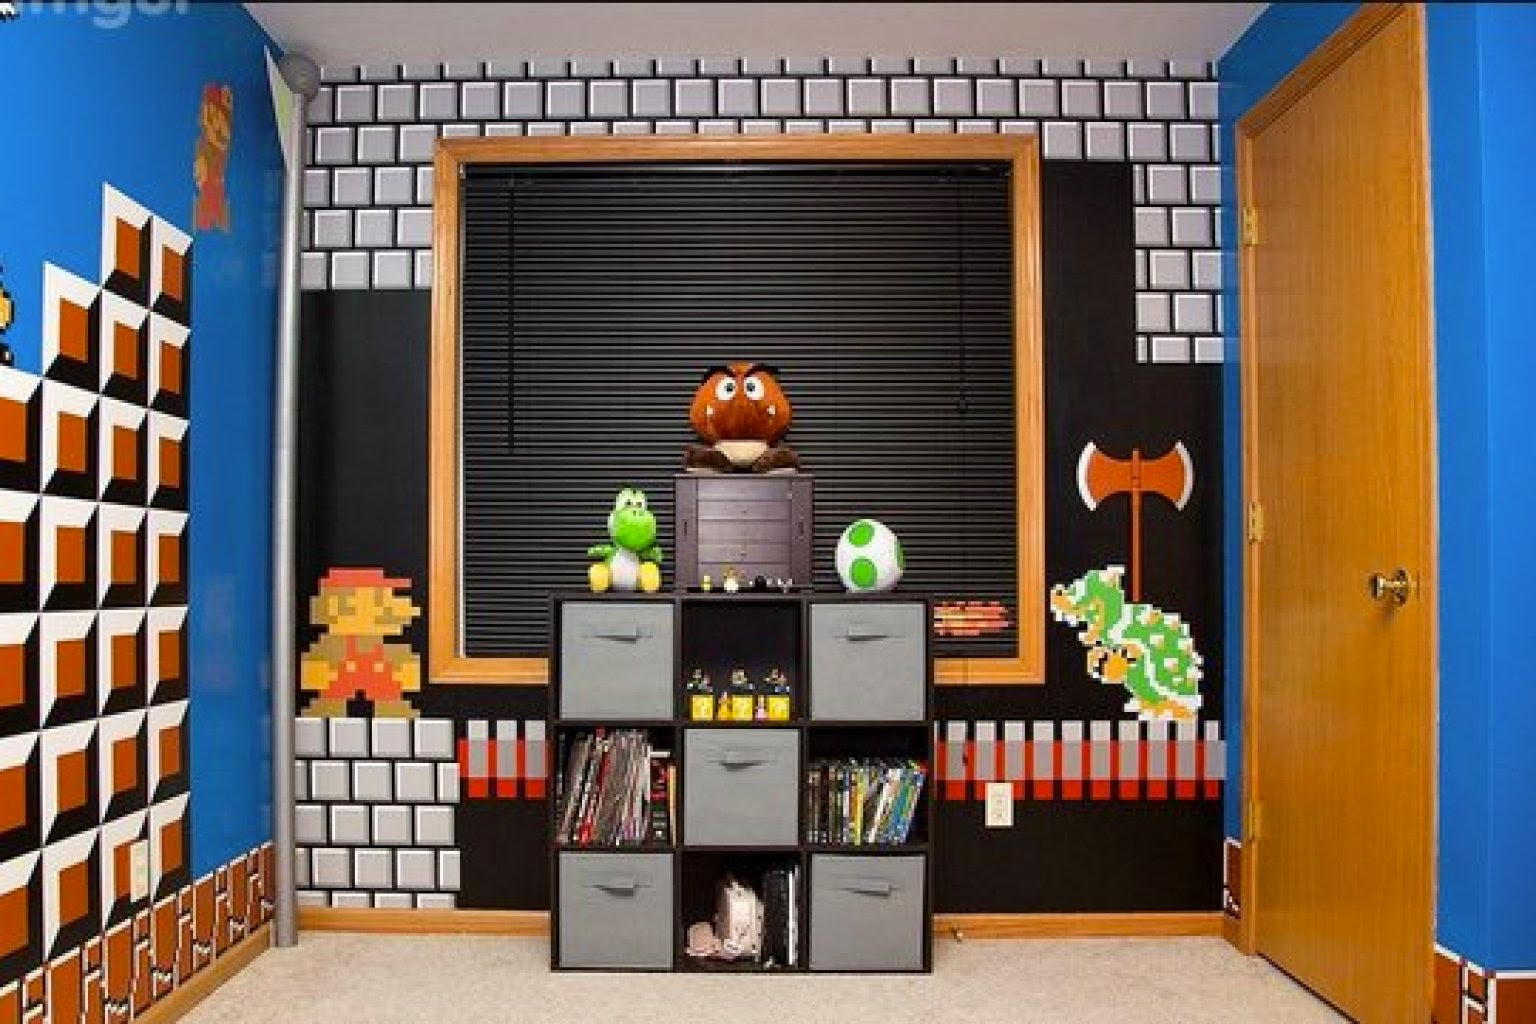 If you are looking for inexpensive bedroom decorating ideas, check out these great pieces for under $100. 47+ Epic Video Game Room Decoration Ideas for 2021